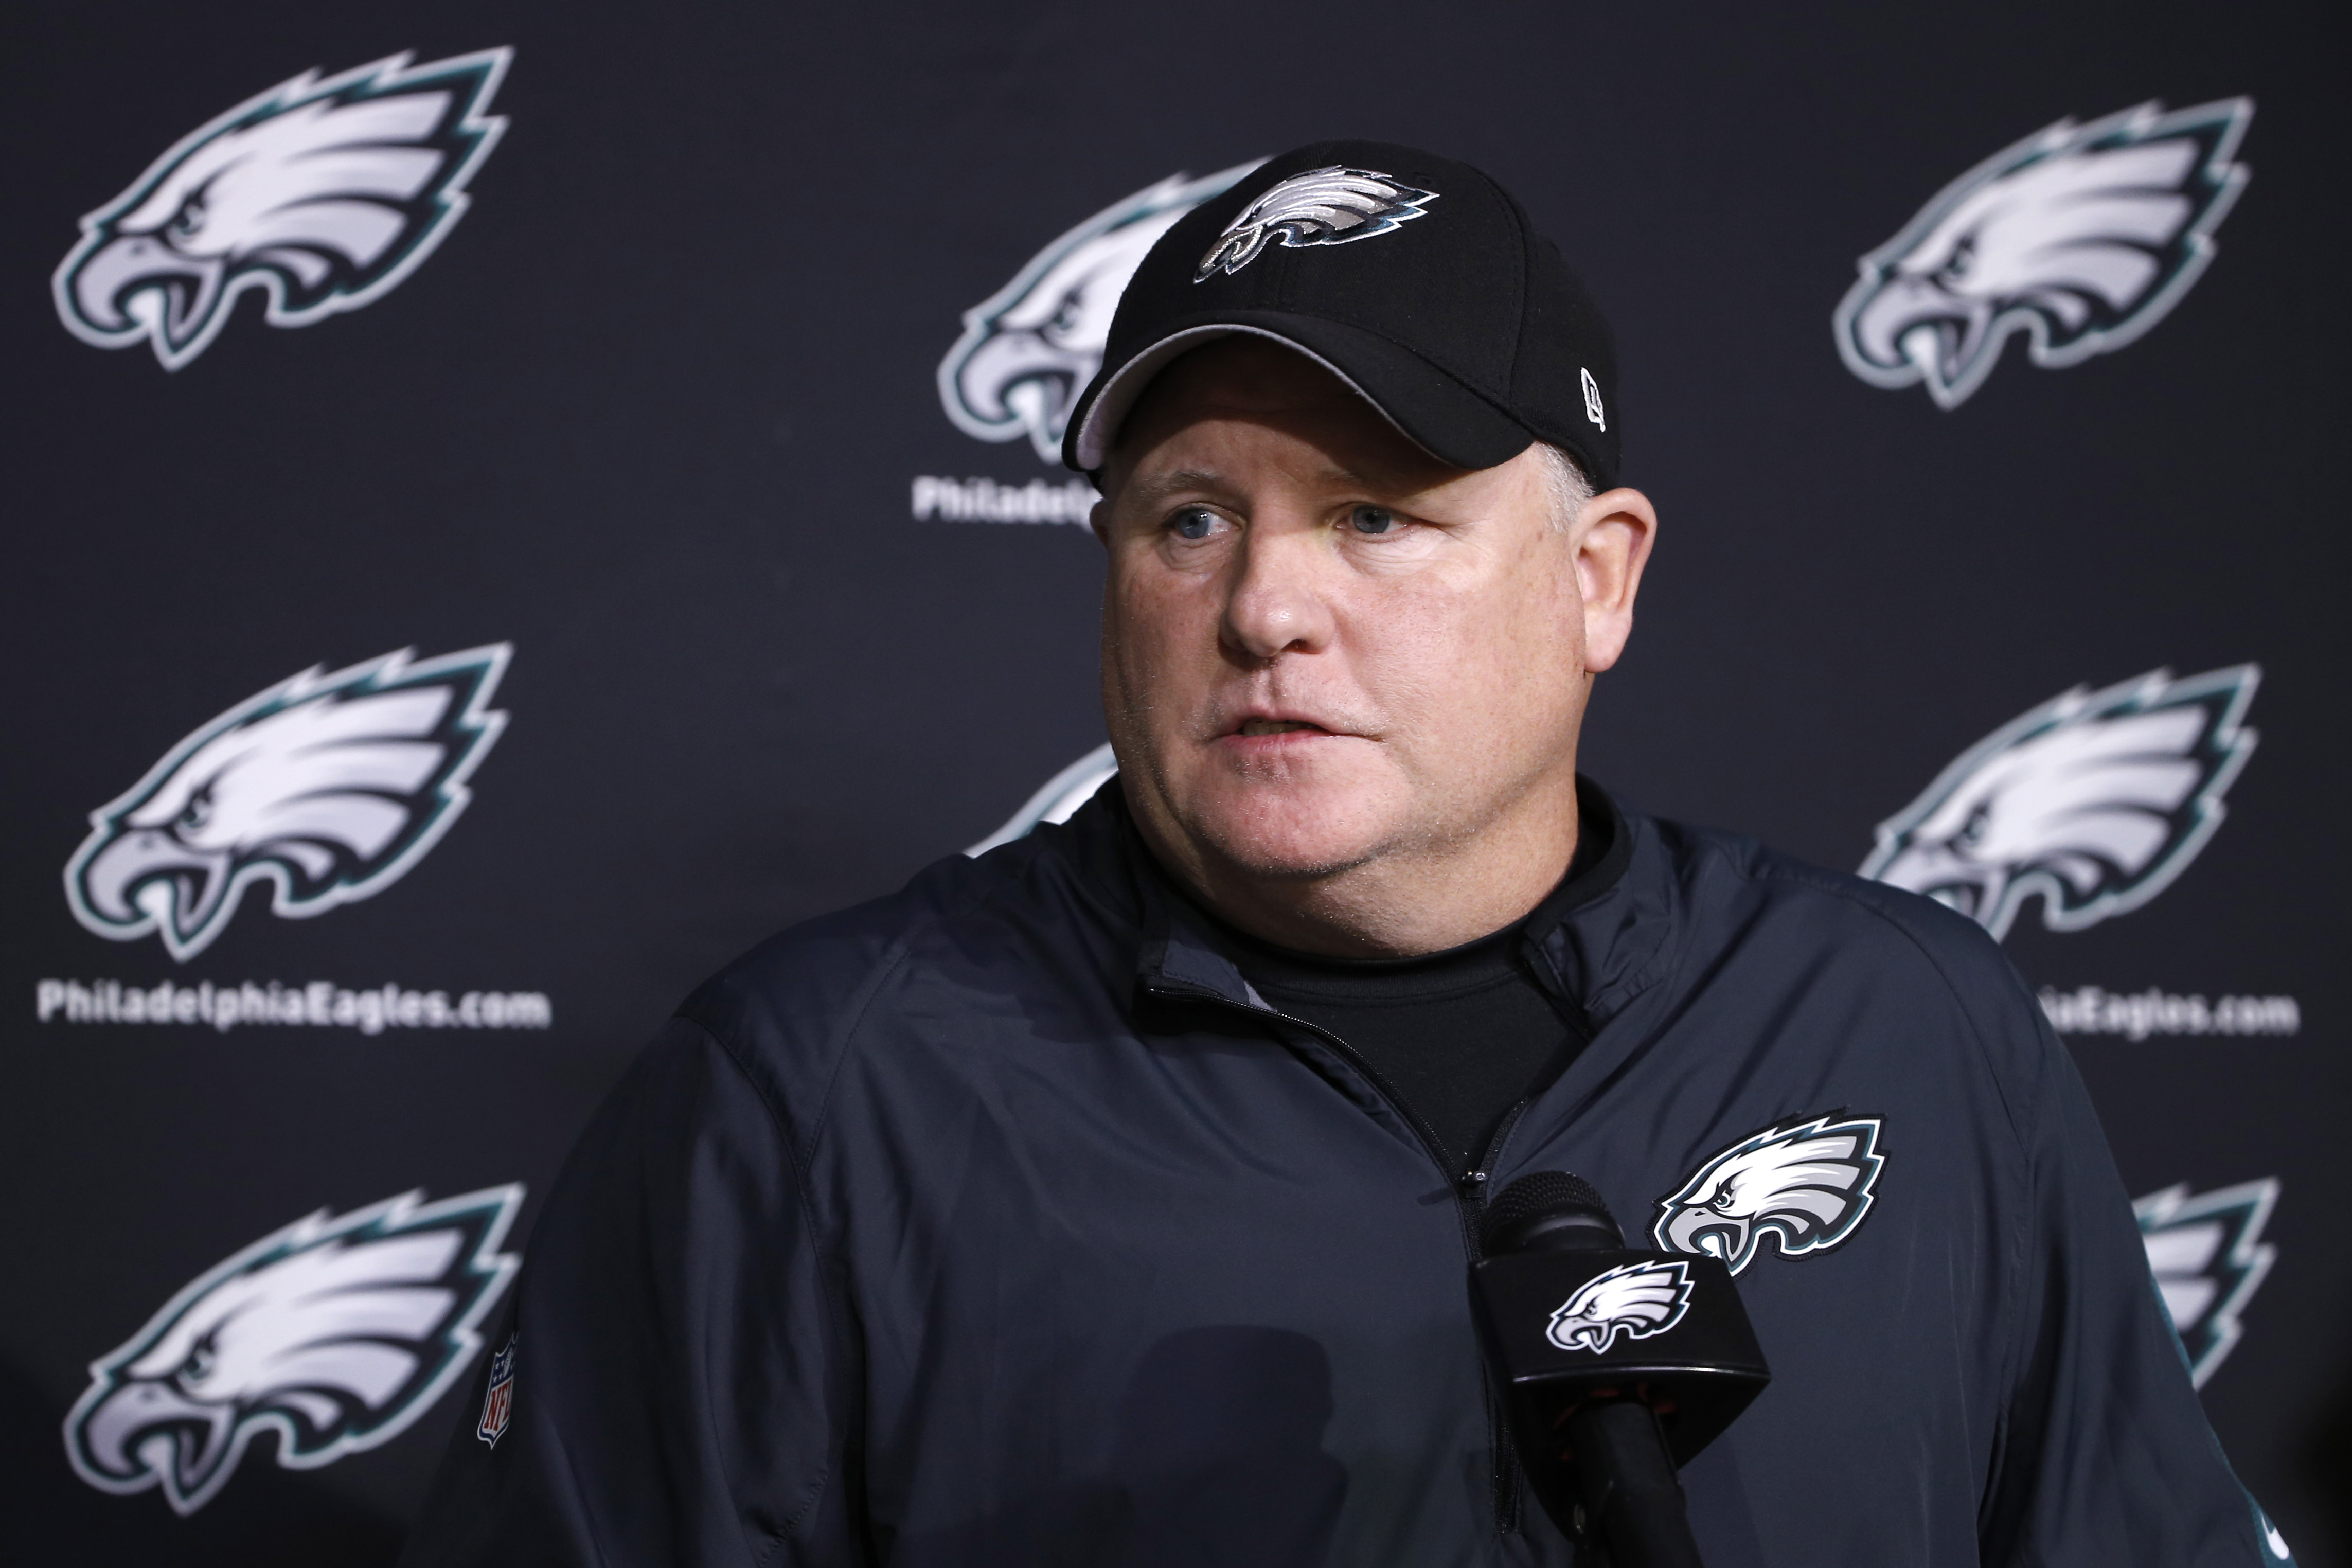 Philadelphia Eagles head coach Chip Kelly speaks with members of the media at the NFL football team's practice facility, Monday, Dec. 28, 2015, in Philadelphia. (AP Photo/Matt Rourke)